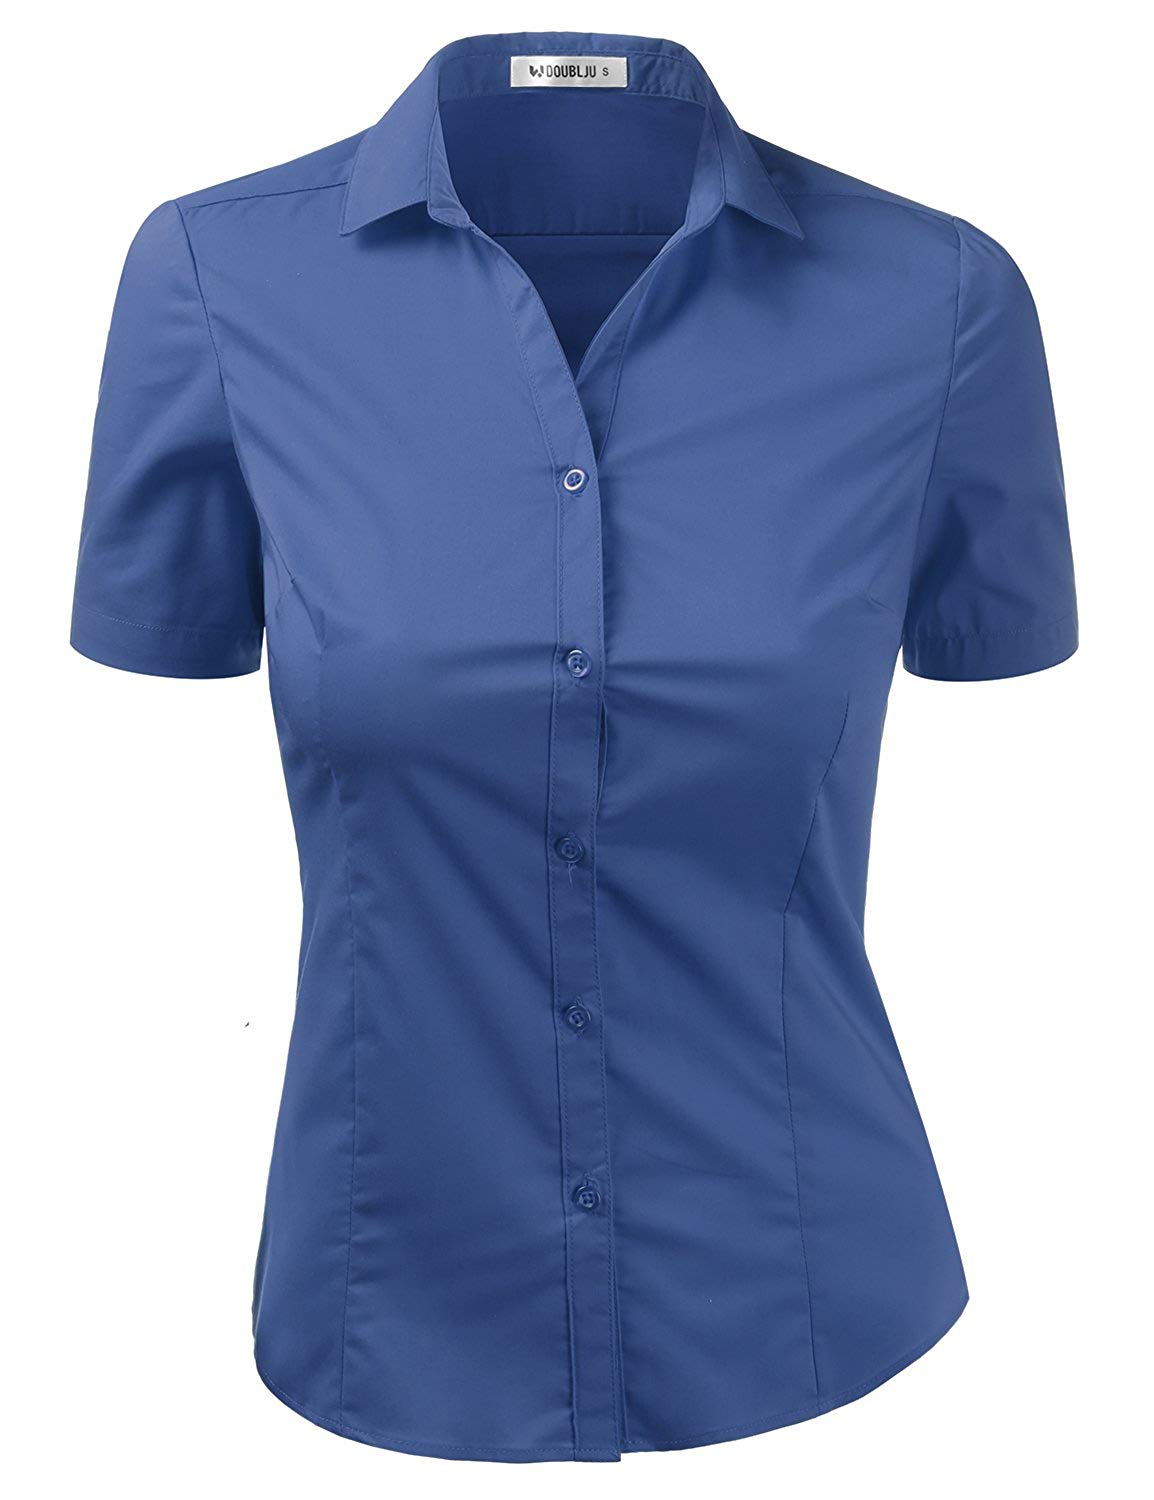 99f68d0c6cd Get Quotations · Doublju Womens Slim Fit Short Sleeve Cotton Spandex Button  Down Shirt with Plus Size